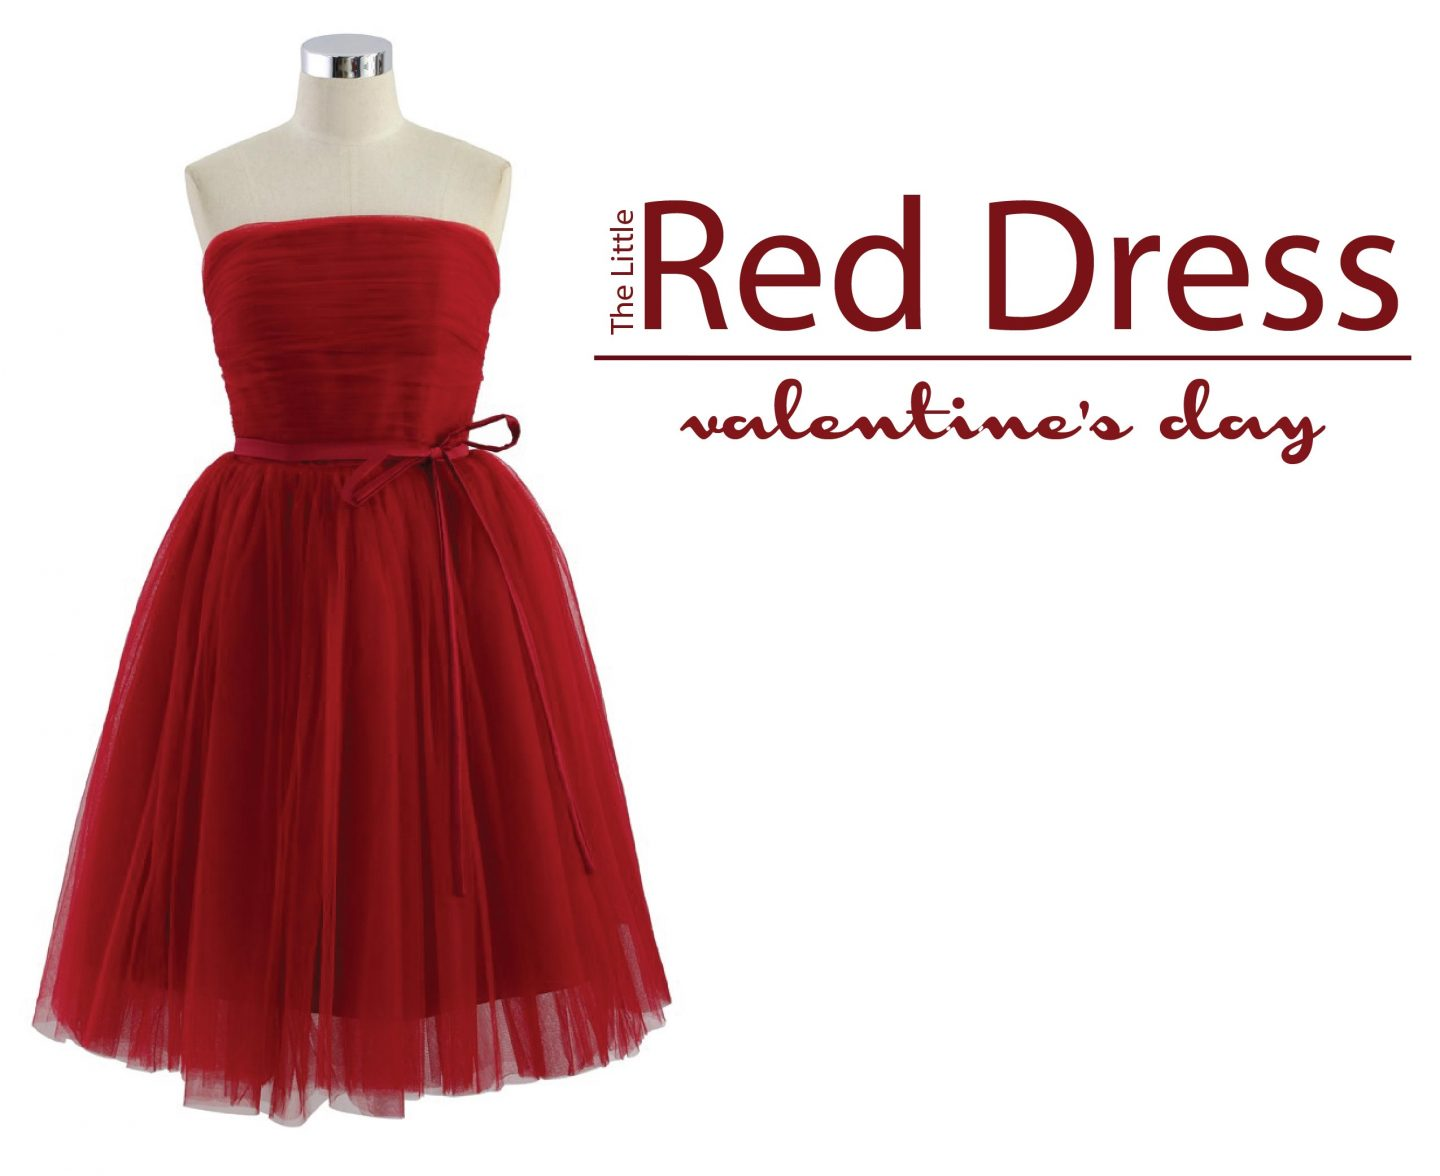 22 Dresses For Every Budget: A Valentine's Day Red Dress Guide